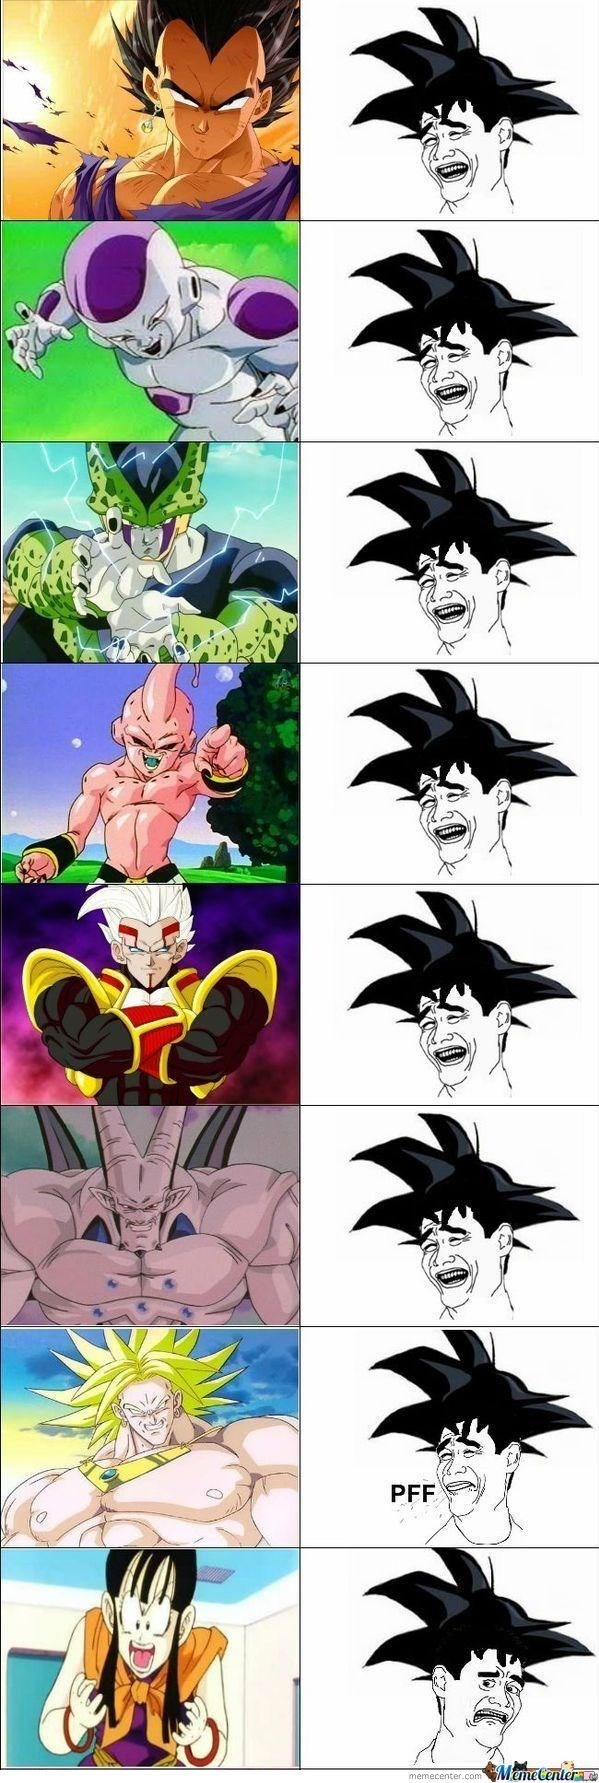 anime villains dragonball z - 8819517952